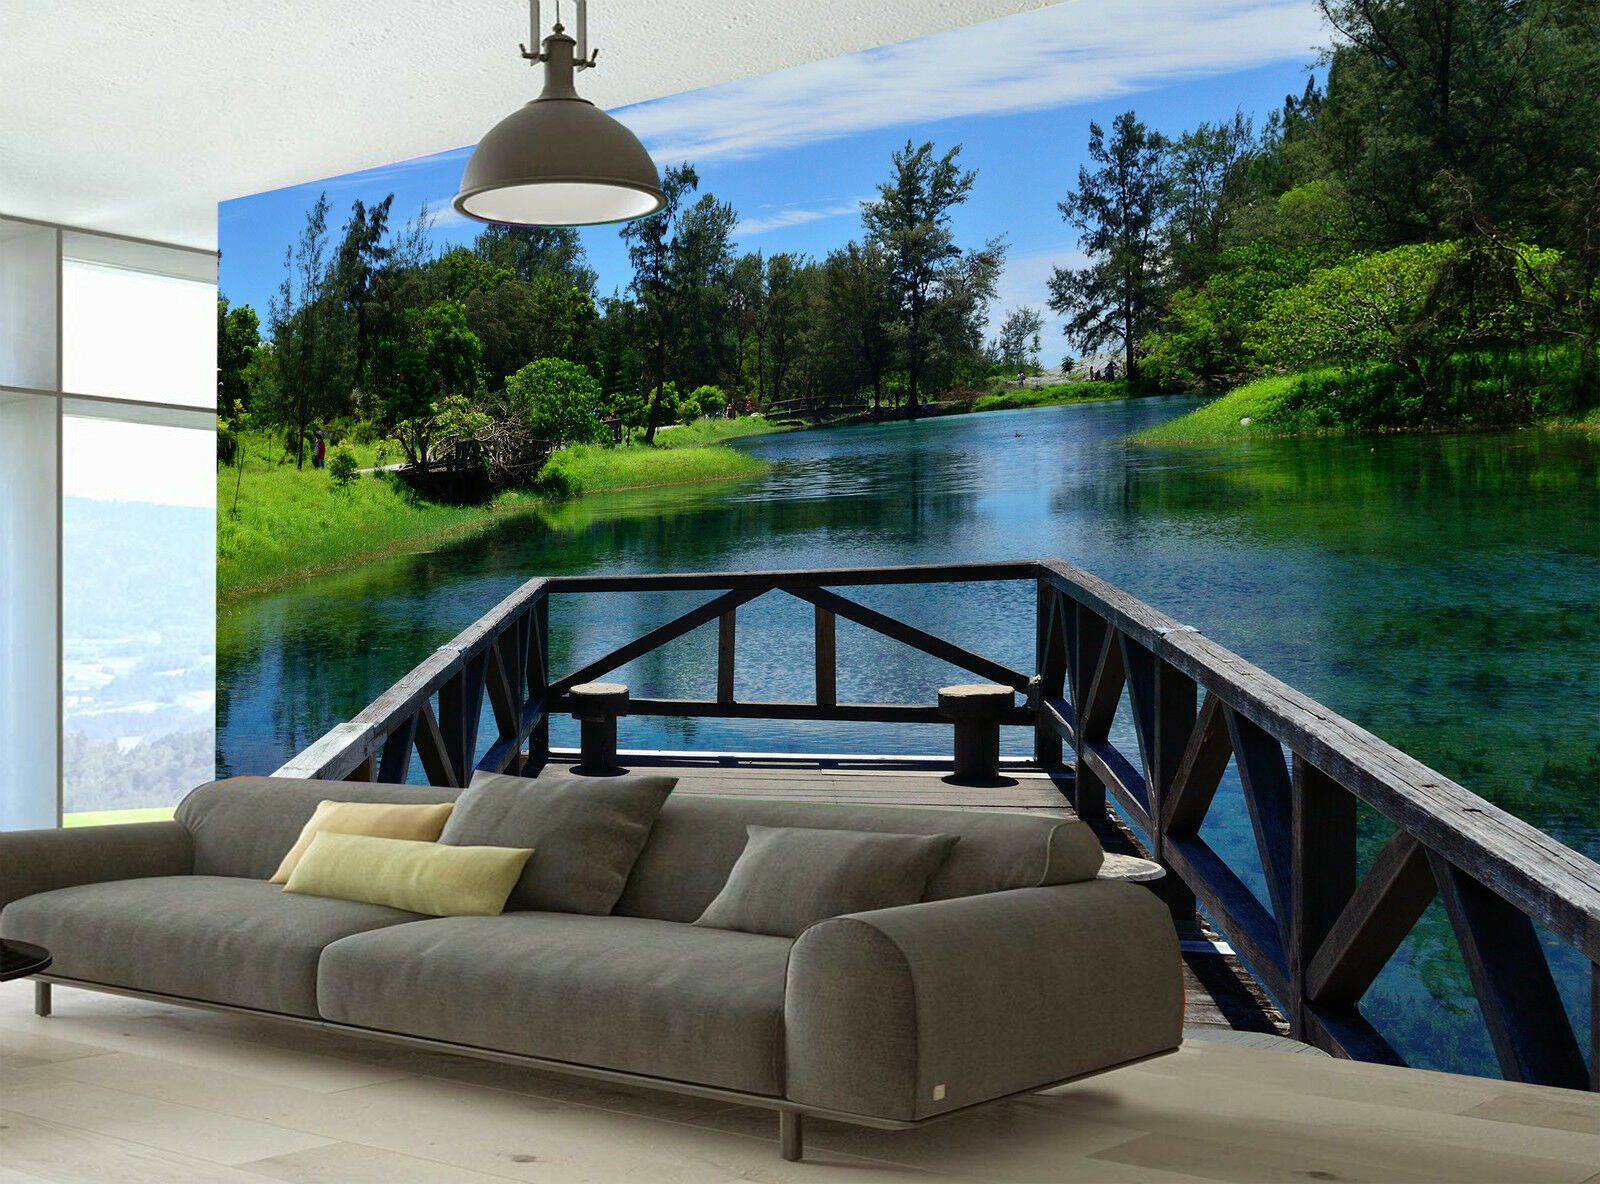 The Bridge Over the Lake Wall Mural Photo Wallpaper GIANT DECOR Paper Poster